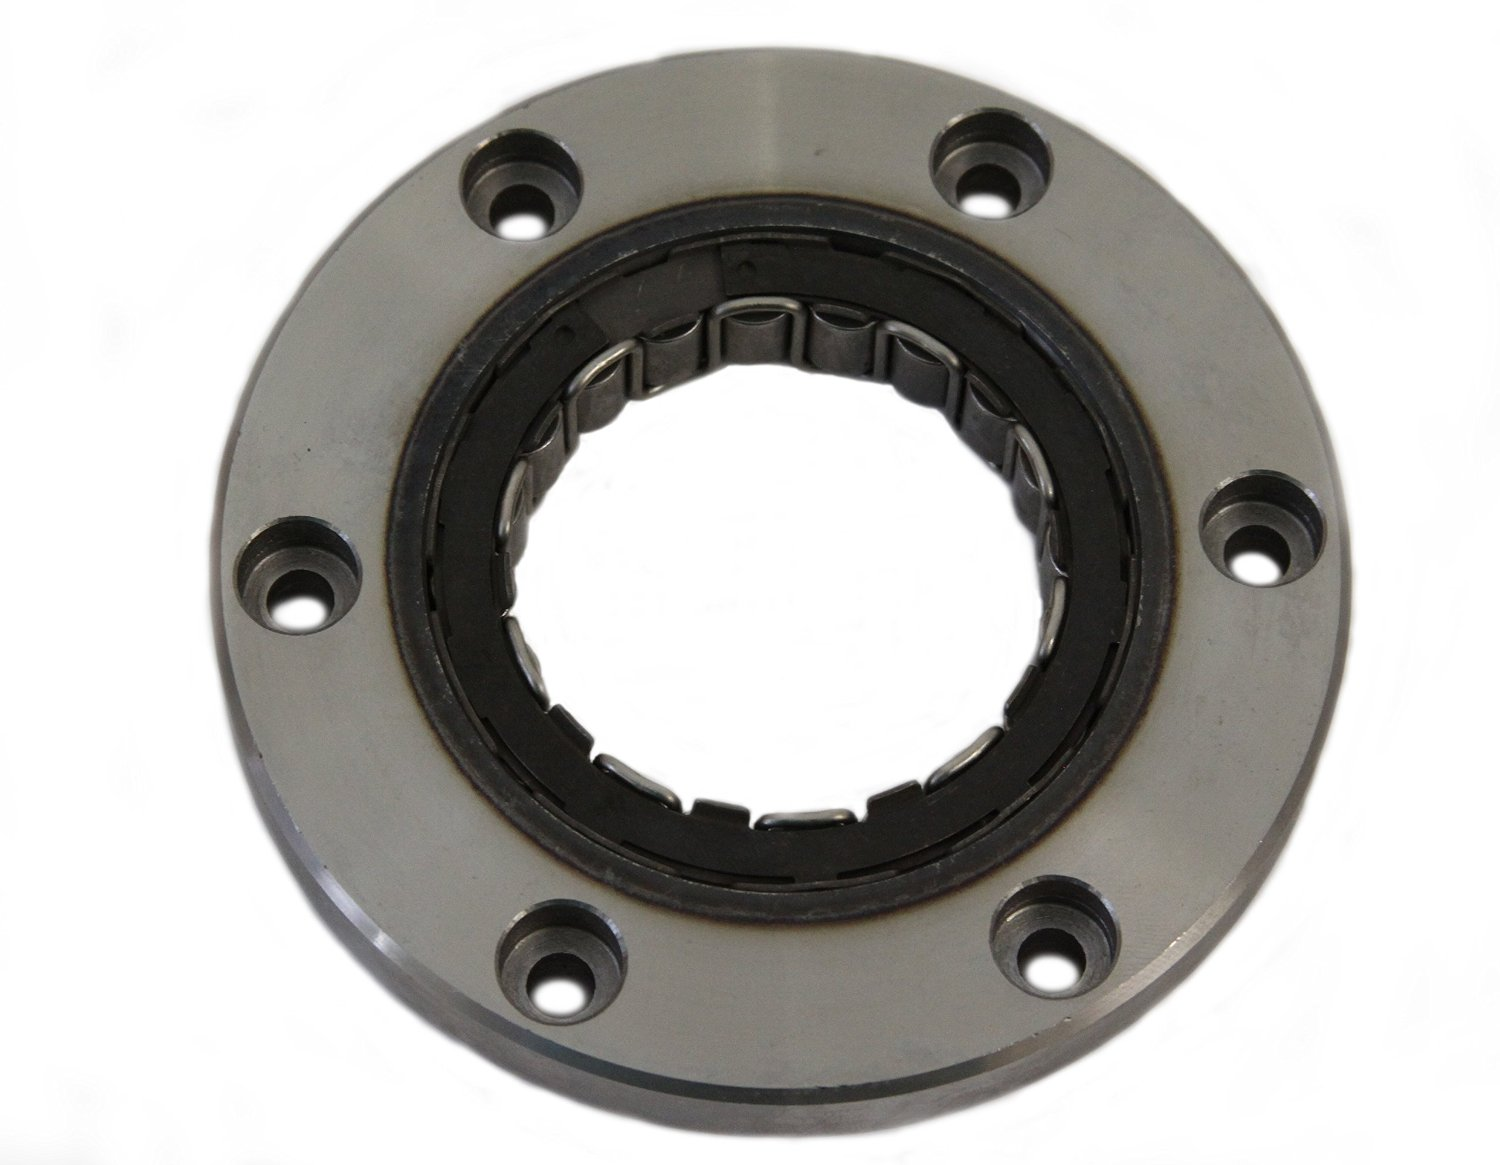 New Starter Clutch One Way Bearing For 2001 2002 2003 Yamaha YFM660R YFM 660 Raptor Replaces 5LP-15590-00-00